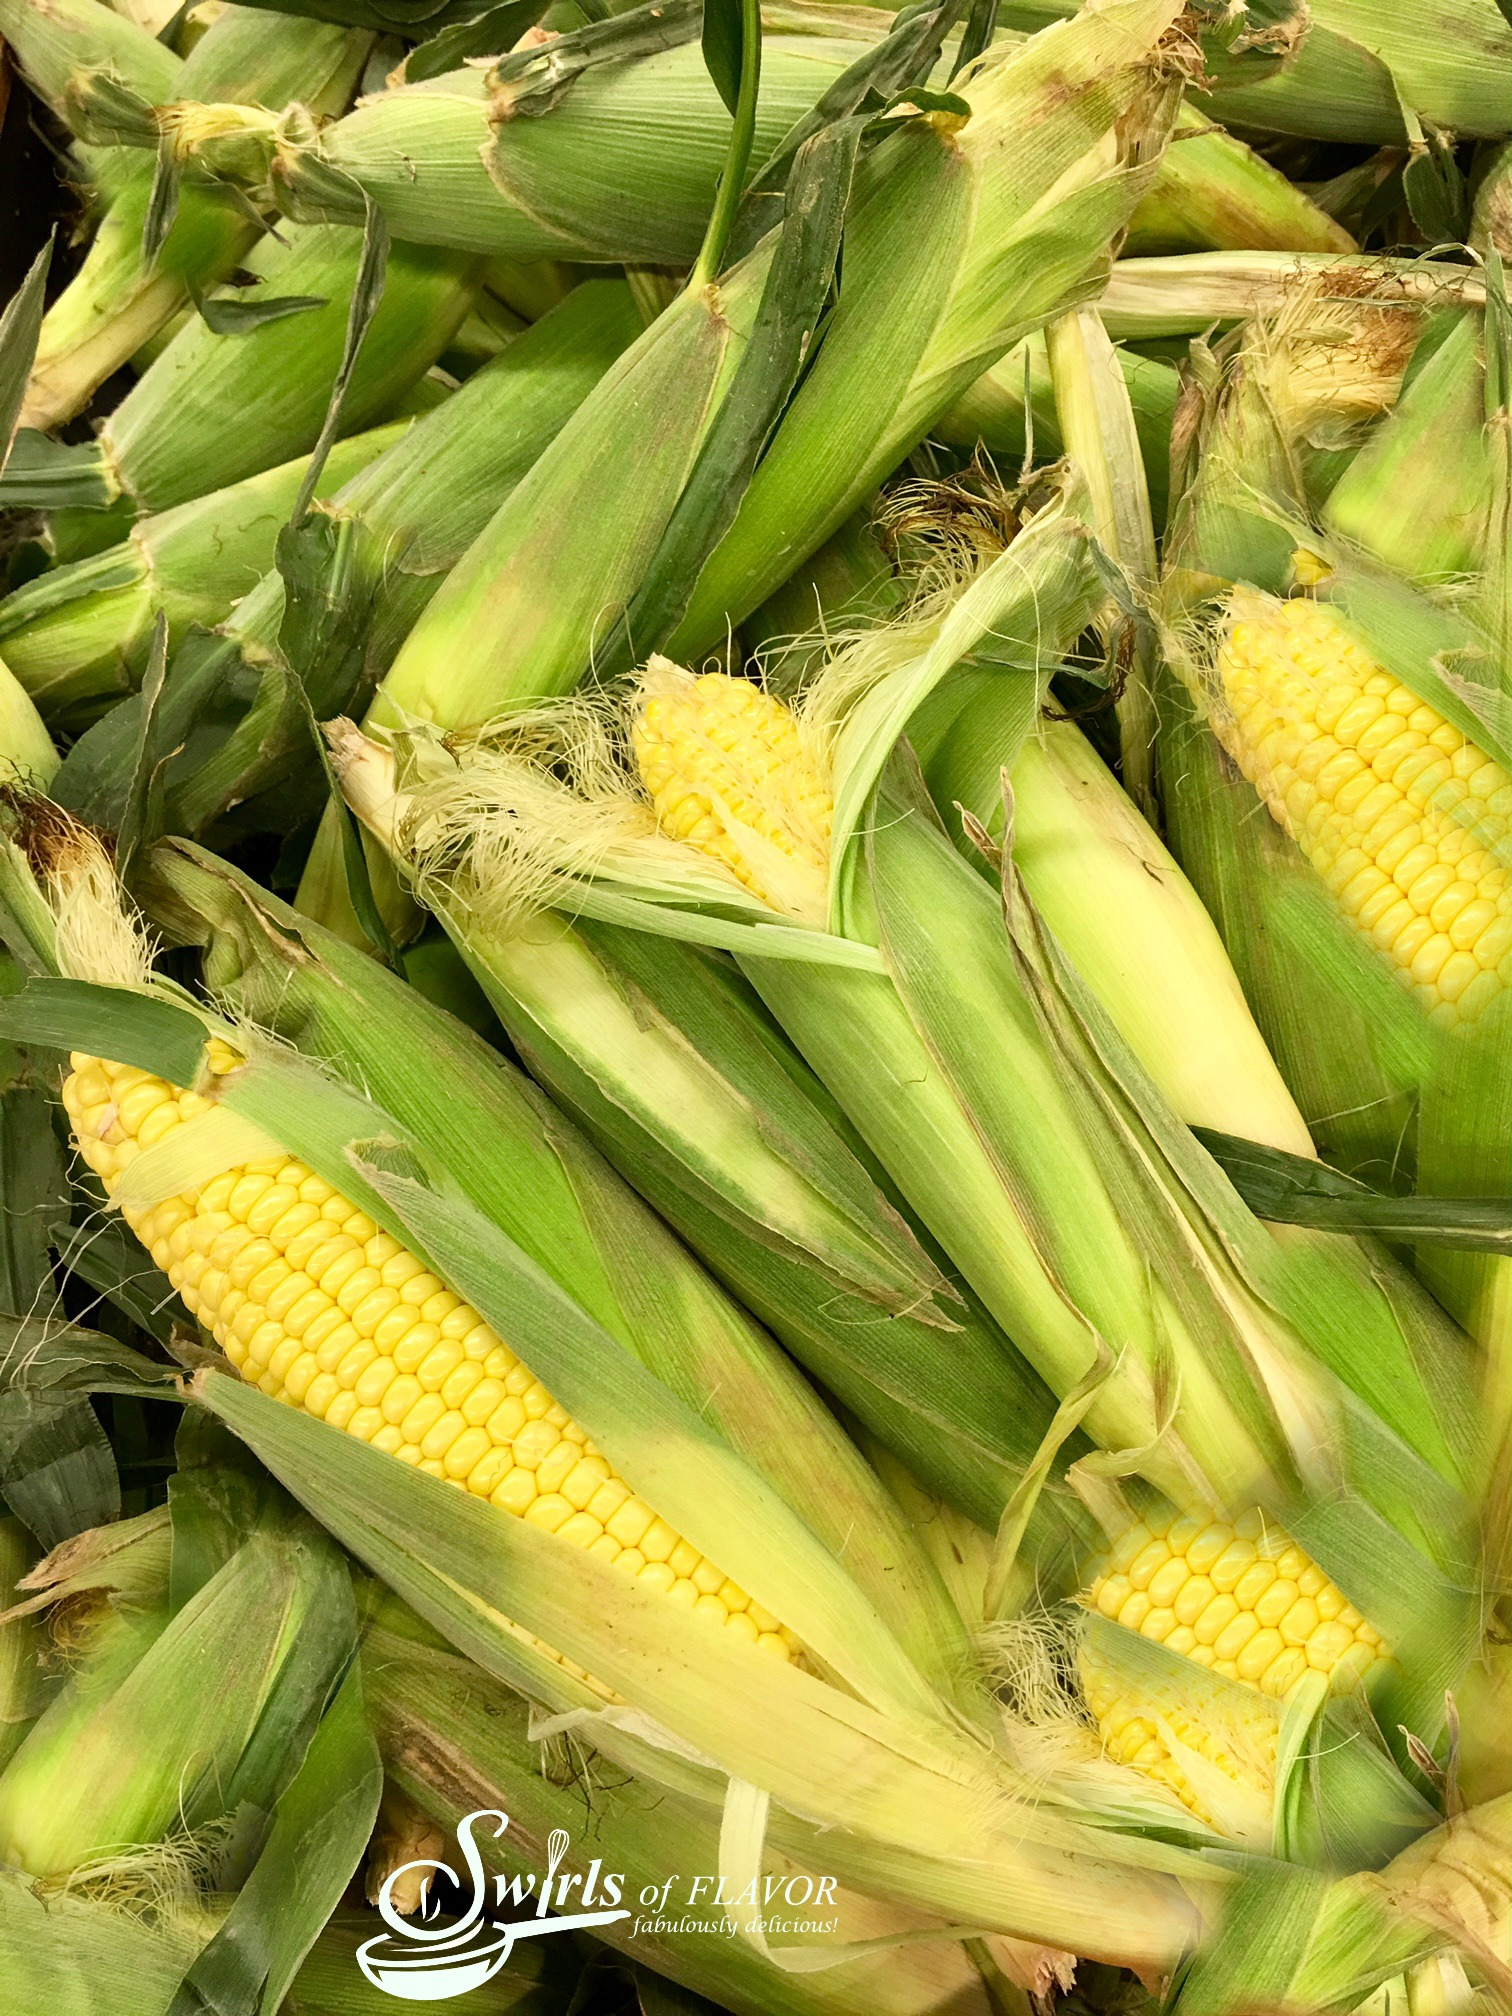 ears of corn on the cob in husks